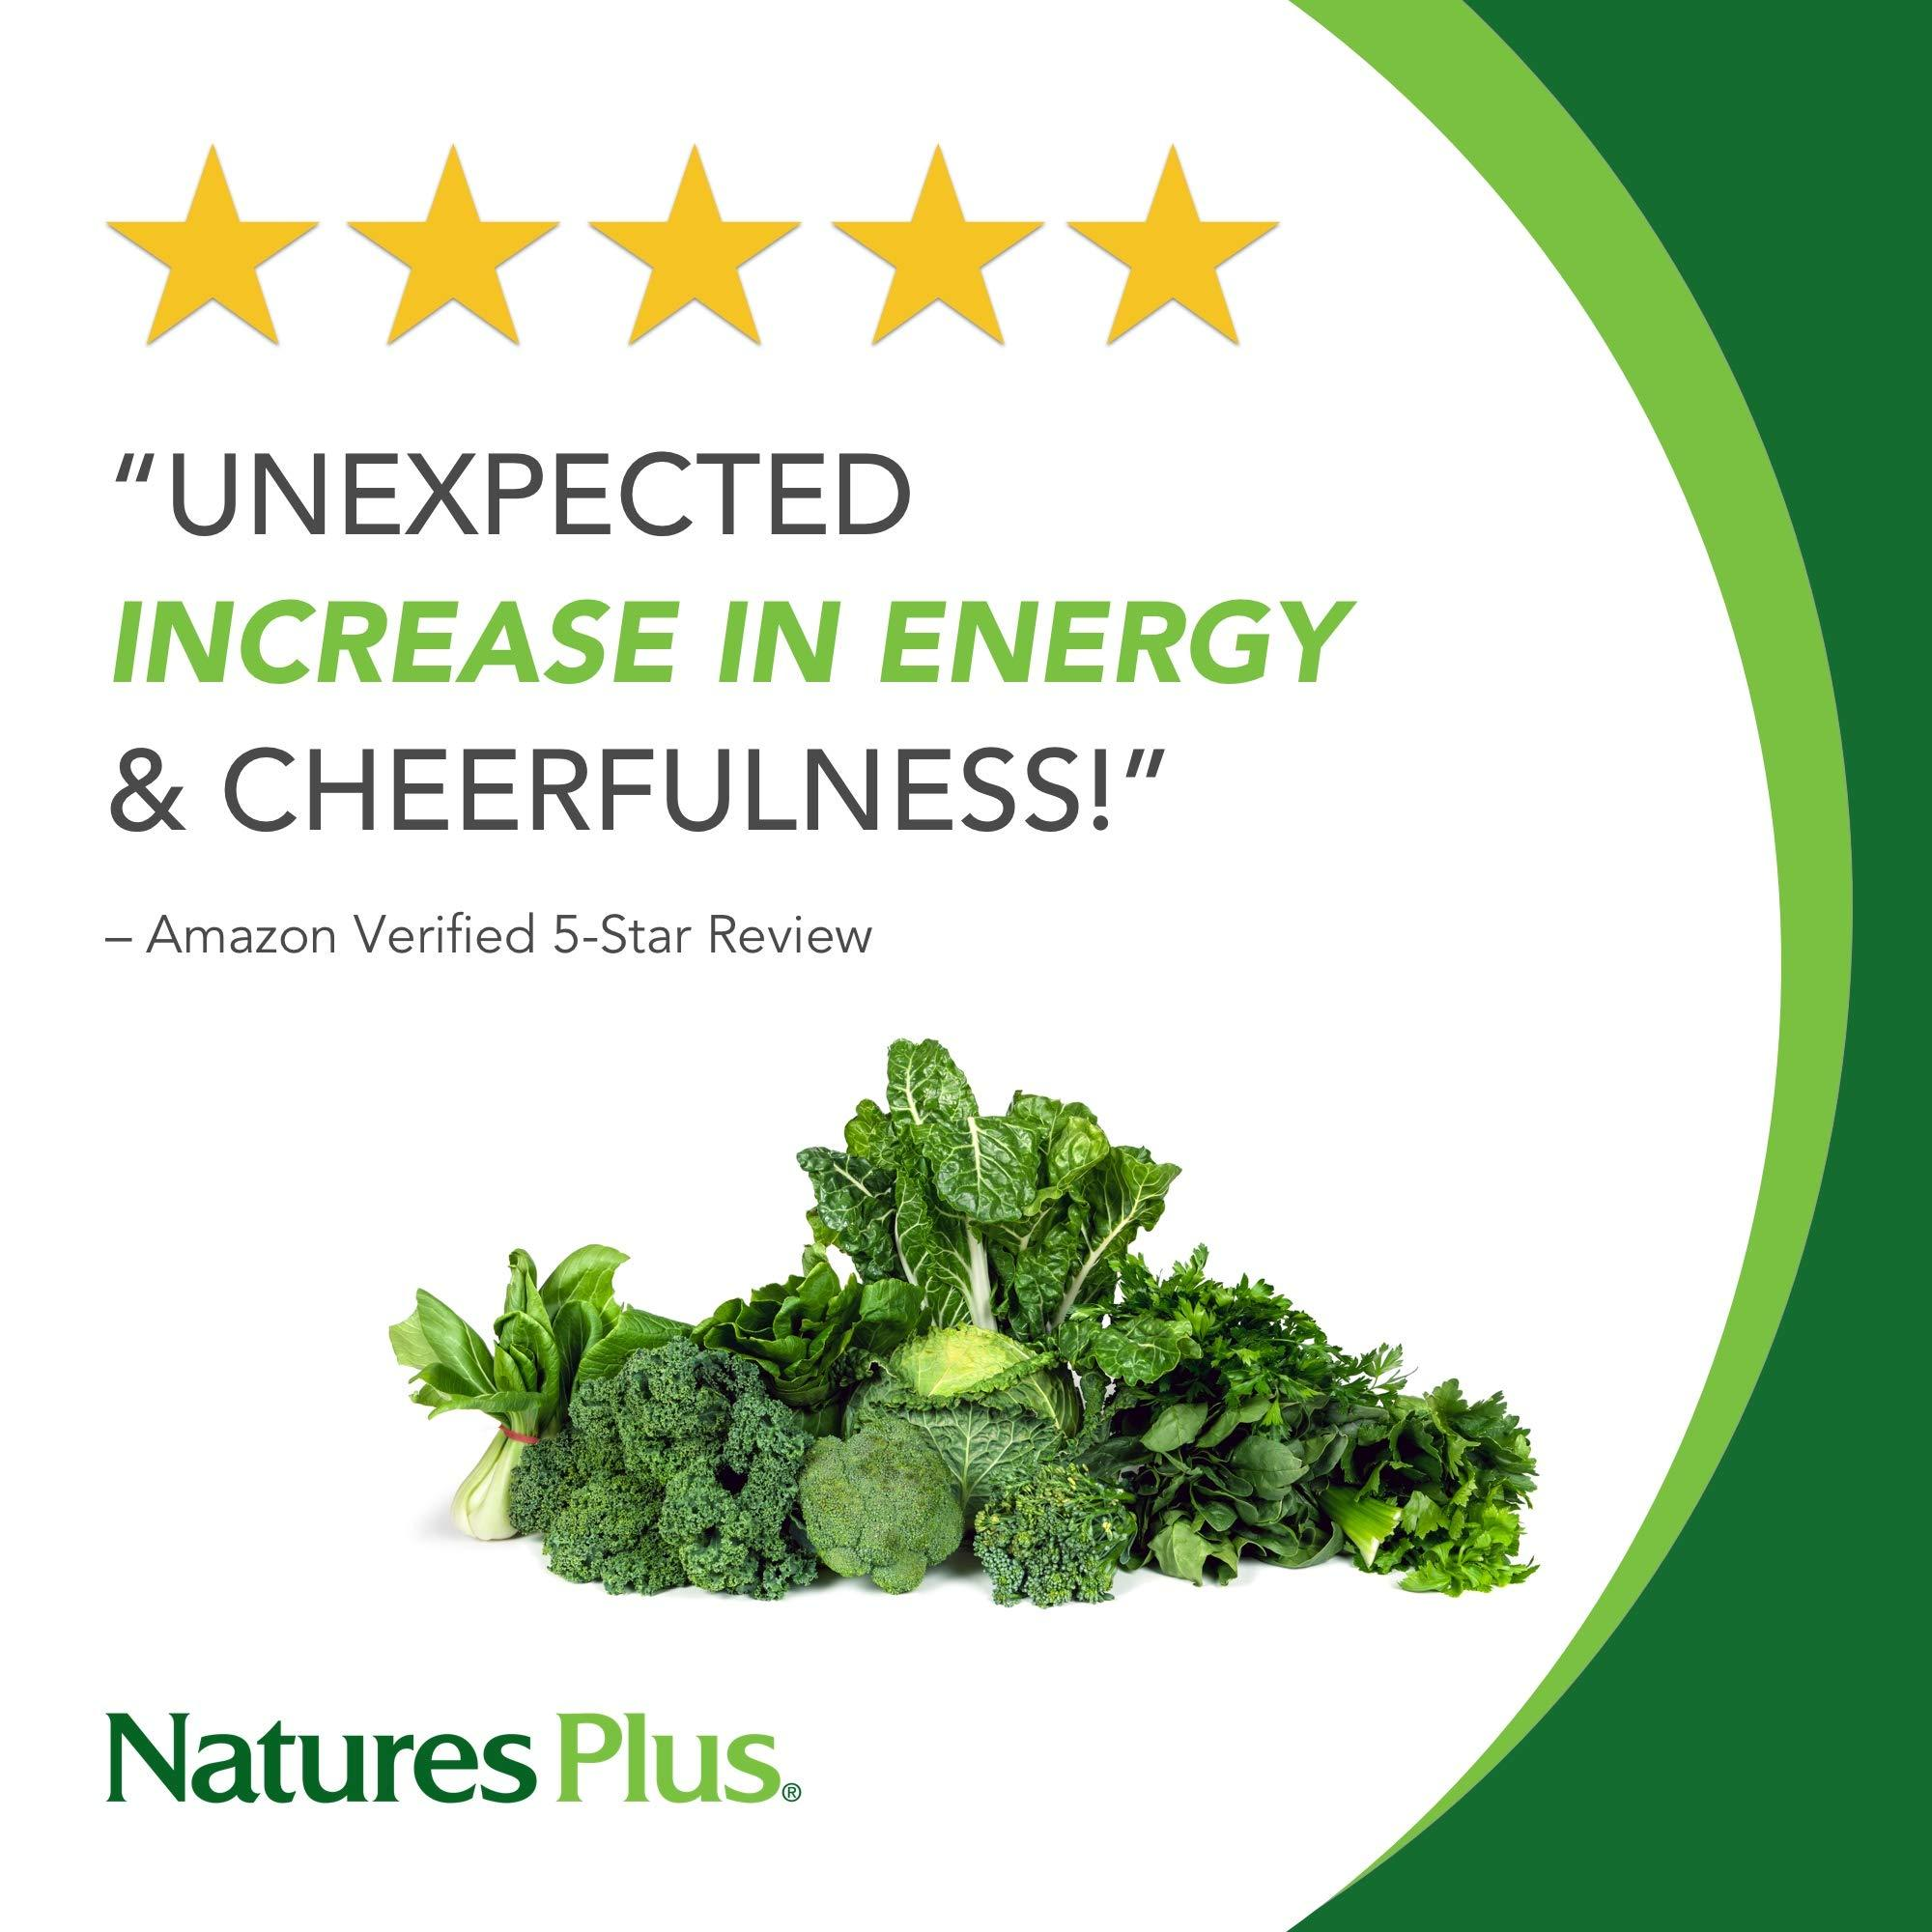 NaturesPlus Ultra Juice Green Powder - 1.32 lbs, Green Drink - Multinutrient Supplement, 20 Whole Green Foods & Global Algae- Non-GMO, Organic, Gluten-Free - 60 Servings 1.32 Pound